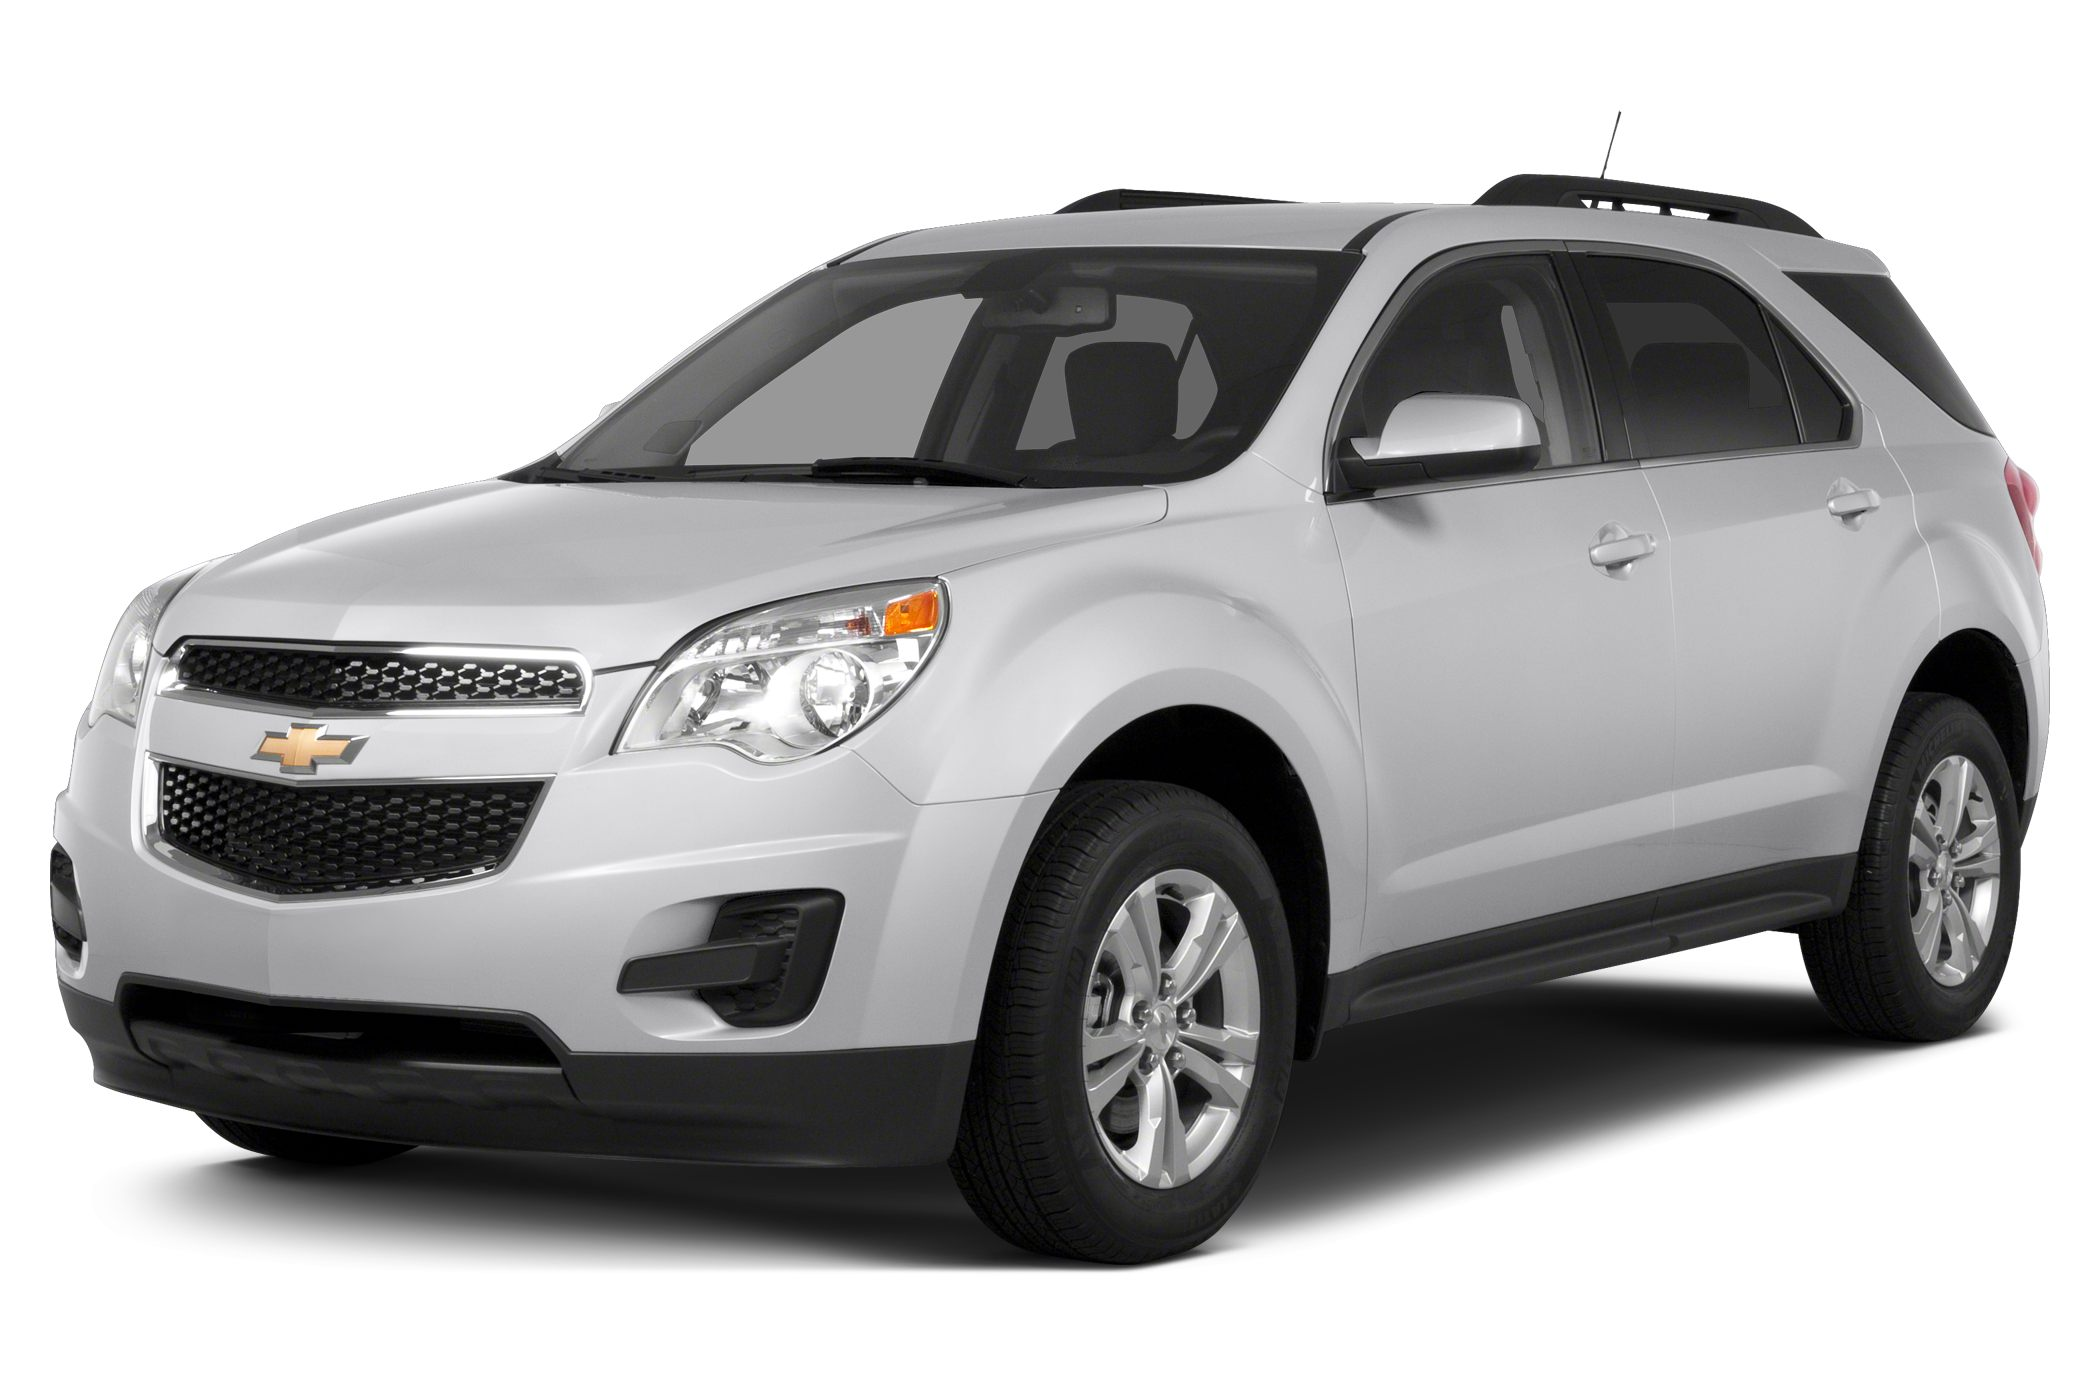 2015 Chevrolet Equinox 2LT SUV for sale in Murphy for $33,440 with 11 miles